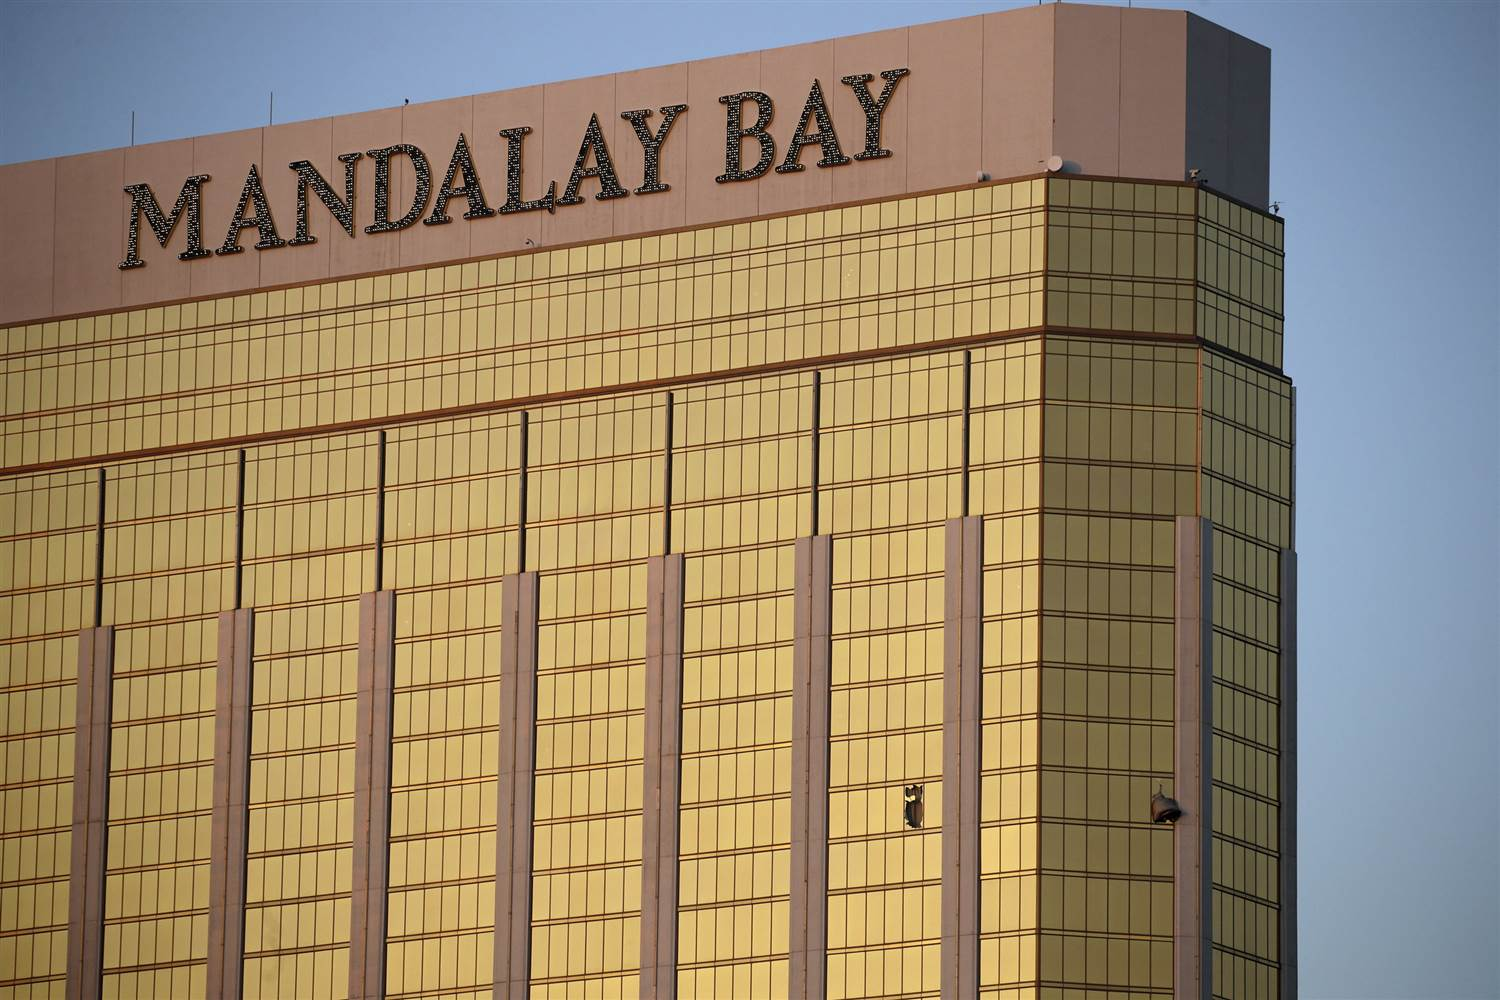 The windows broken by Stephen Paddock at Mandalay Bay